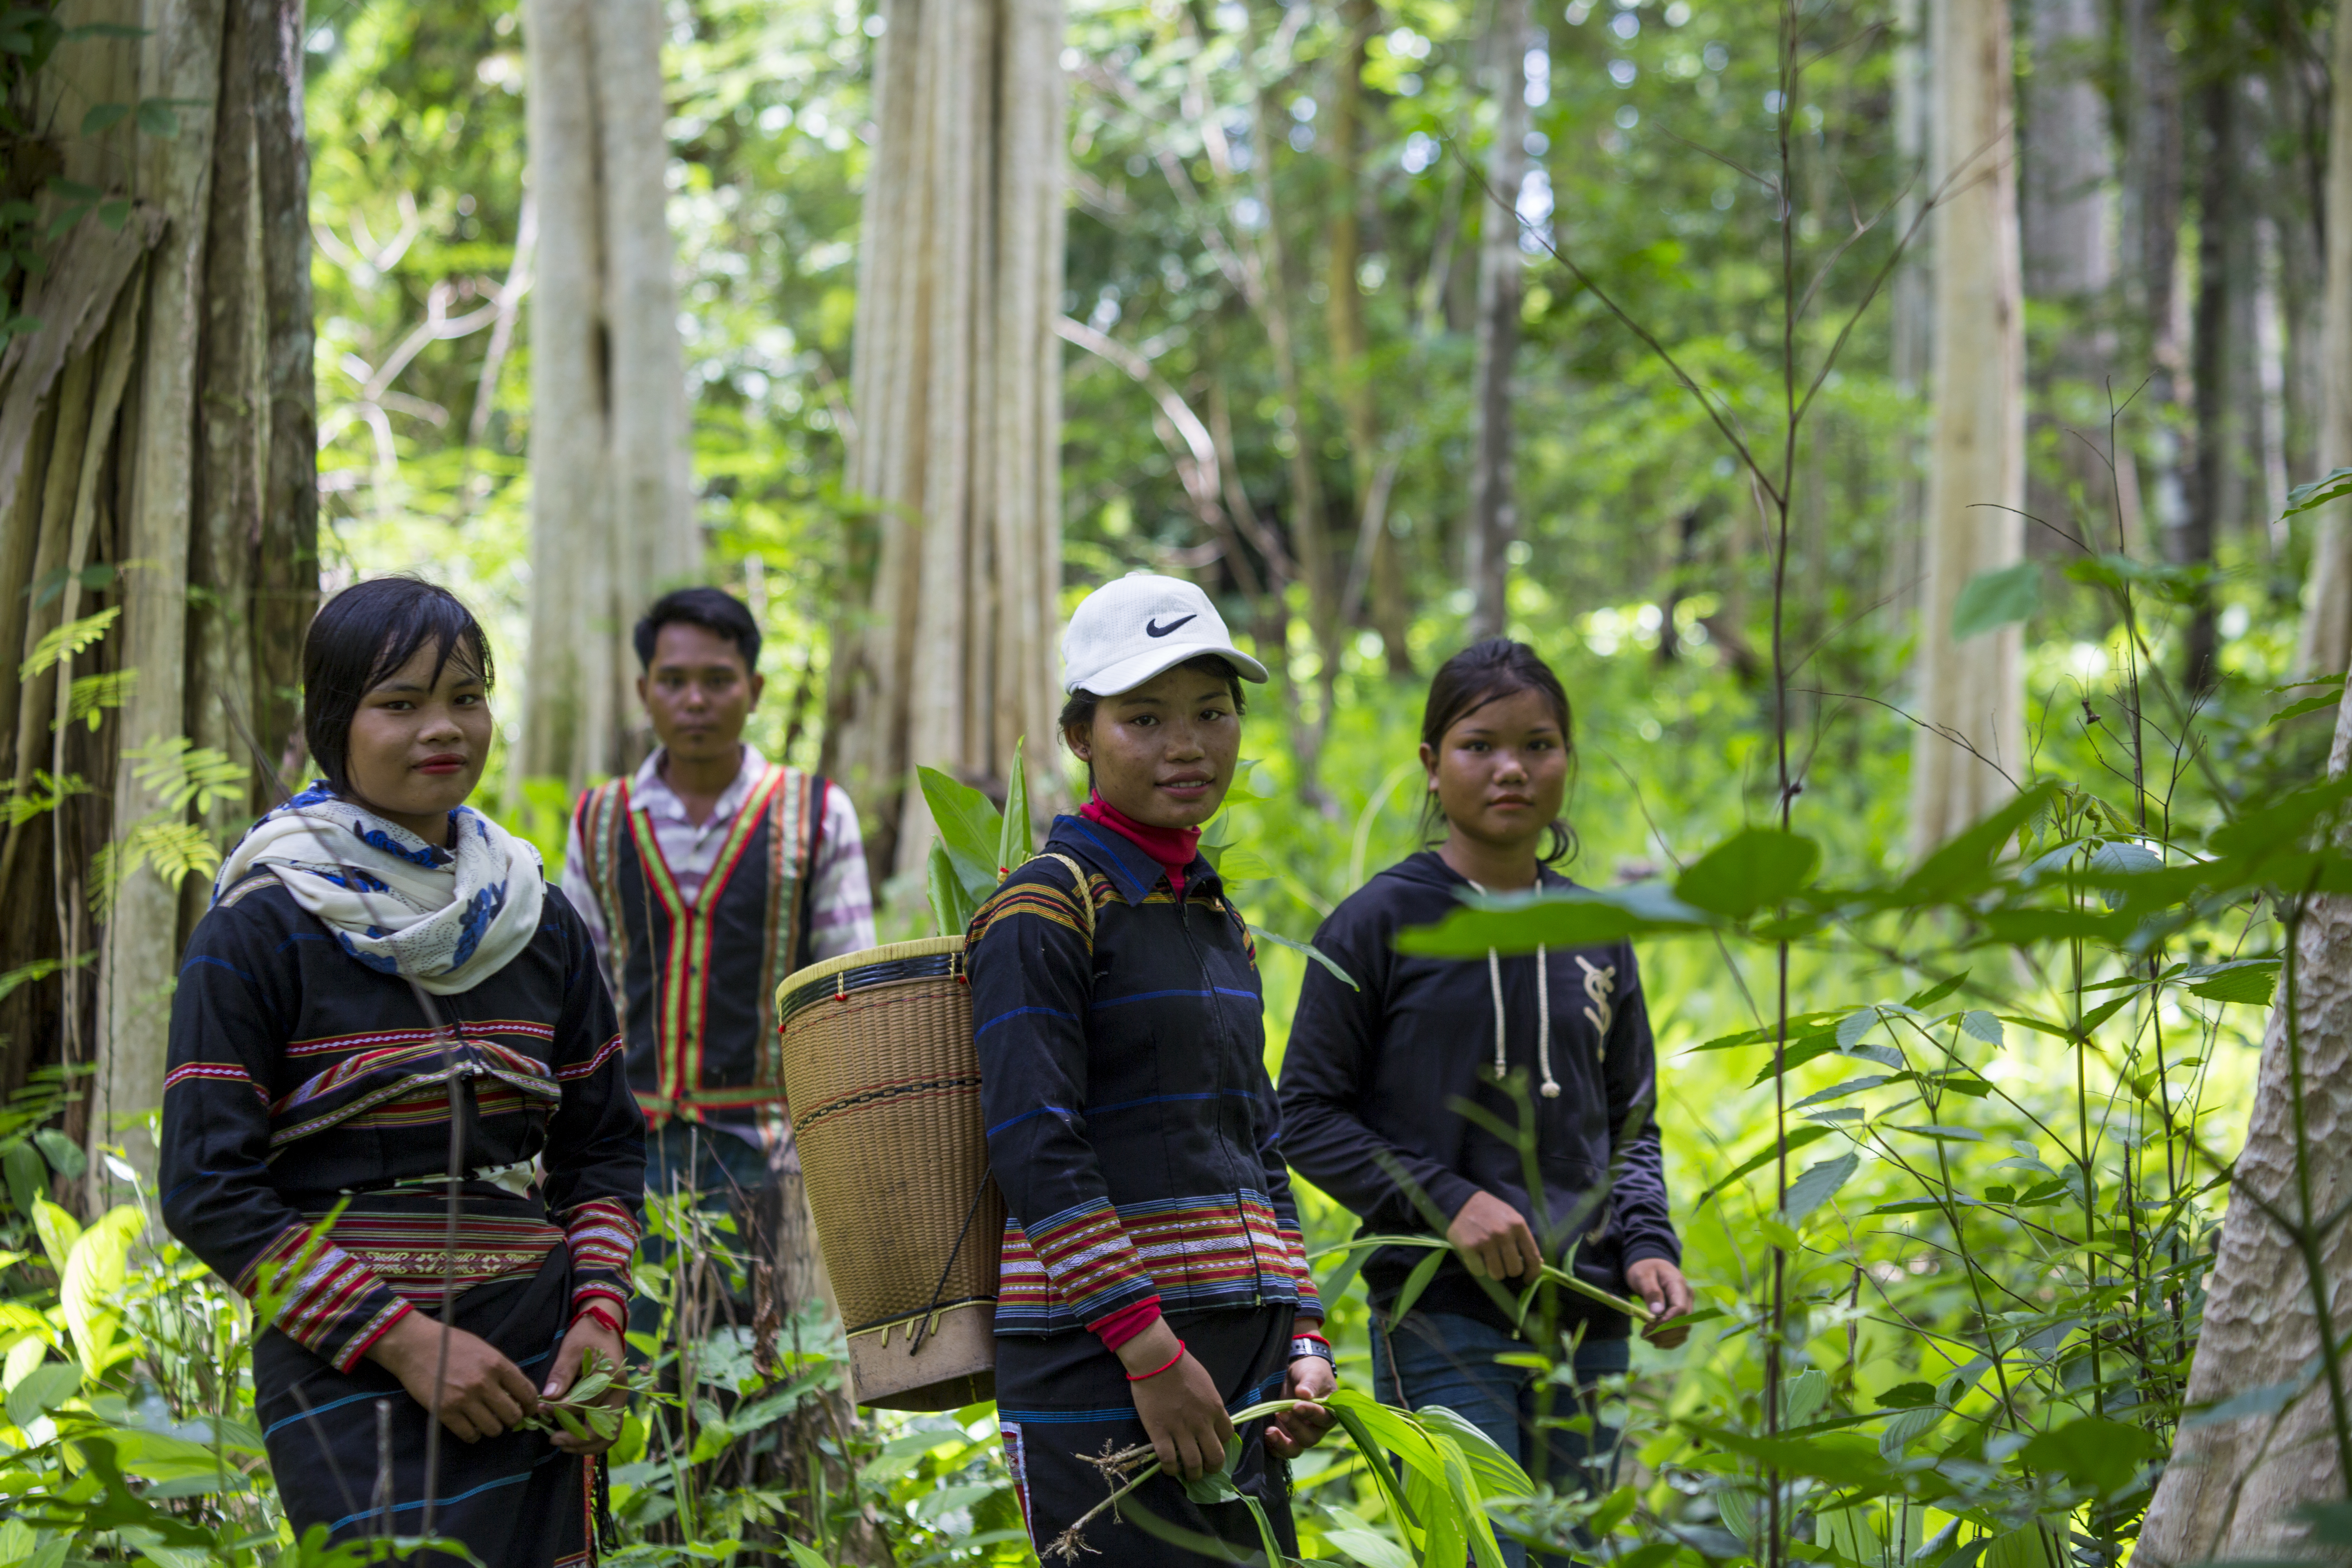 Sav Leat stands behind the young women in the community forest of Pa Tang village while they are posting for a picture to share on their facebook. Photo by Savann Oeurm/Oxfam